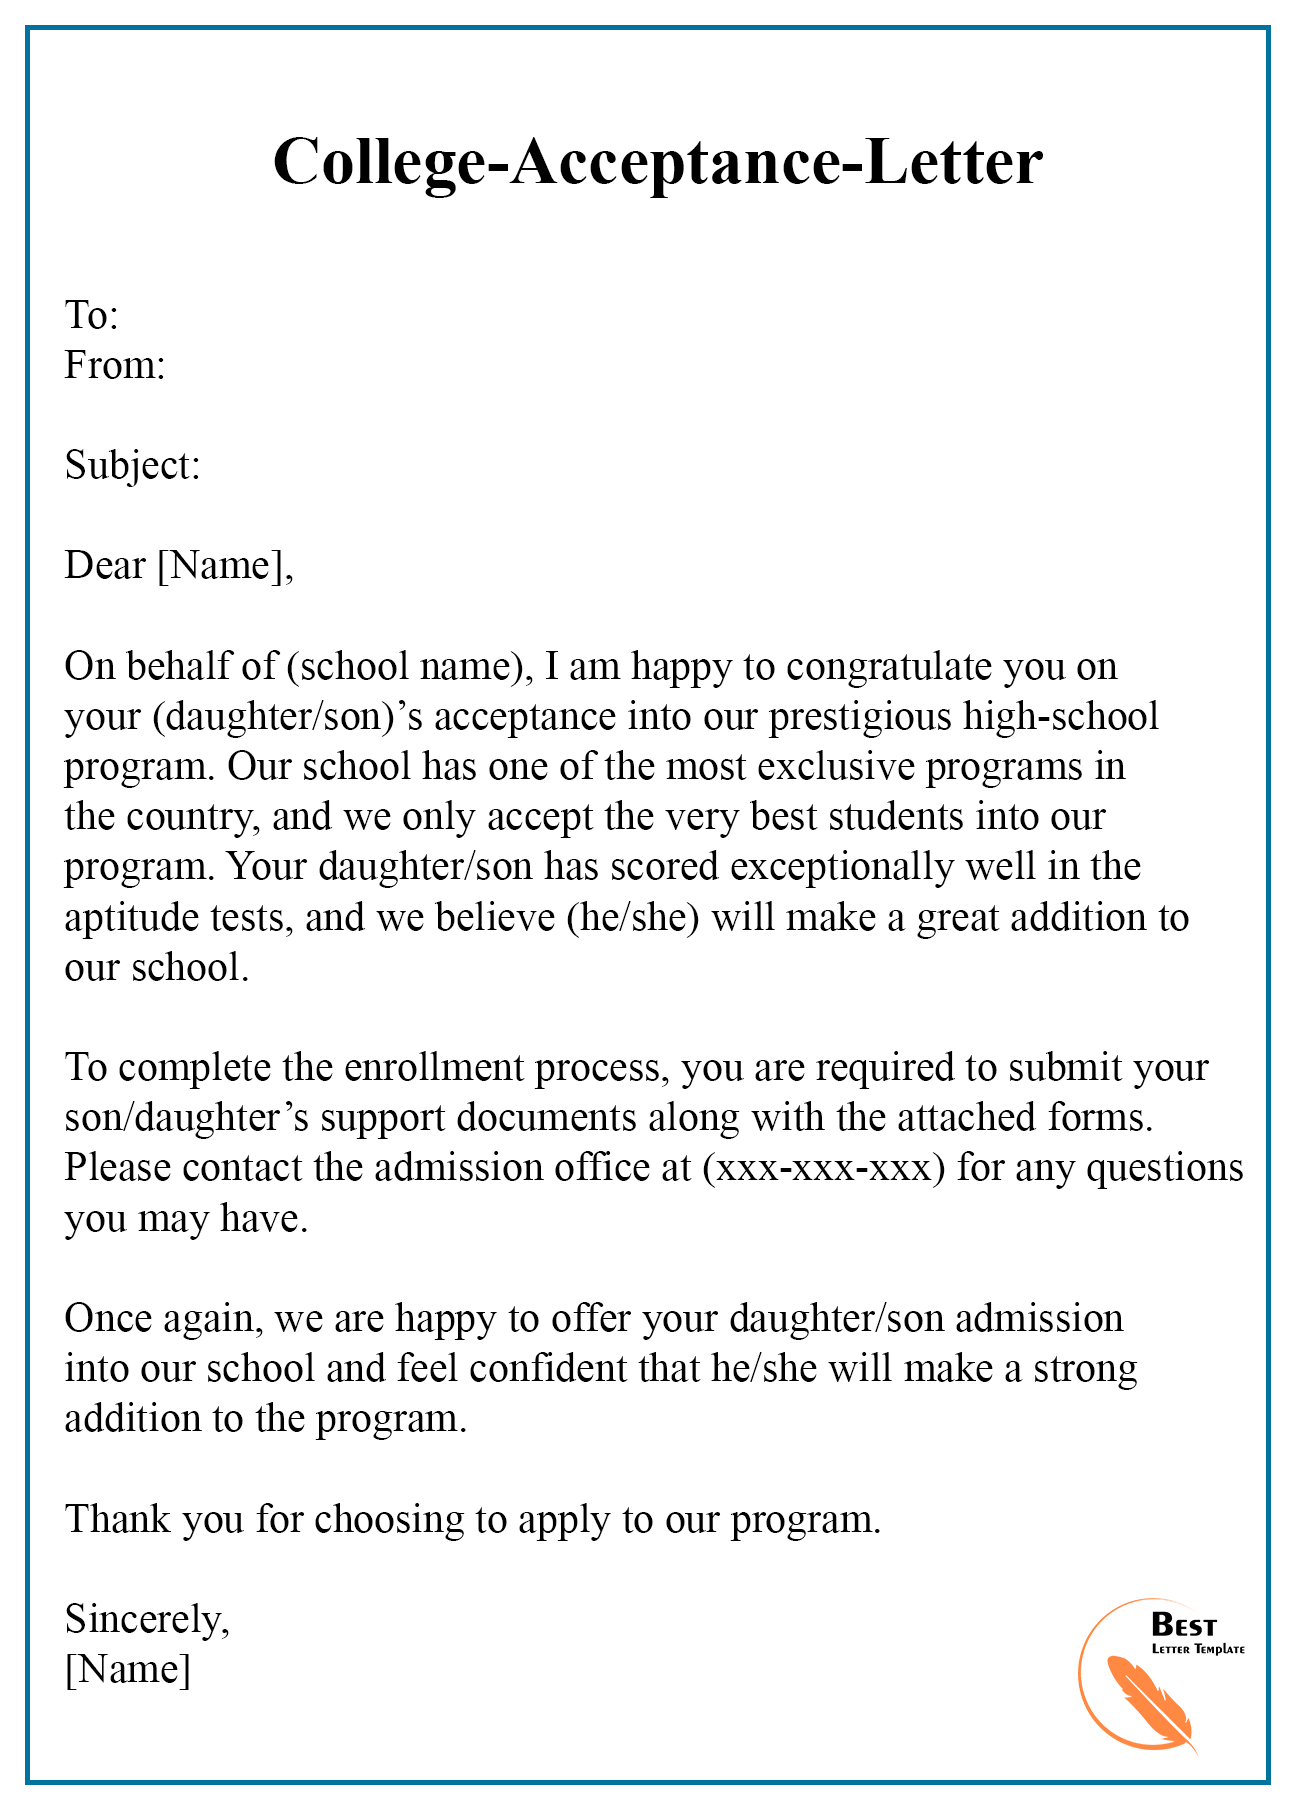 College Acceptance Letter Template – Format, Sample & Examples For College Acceptance Letter Template